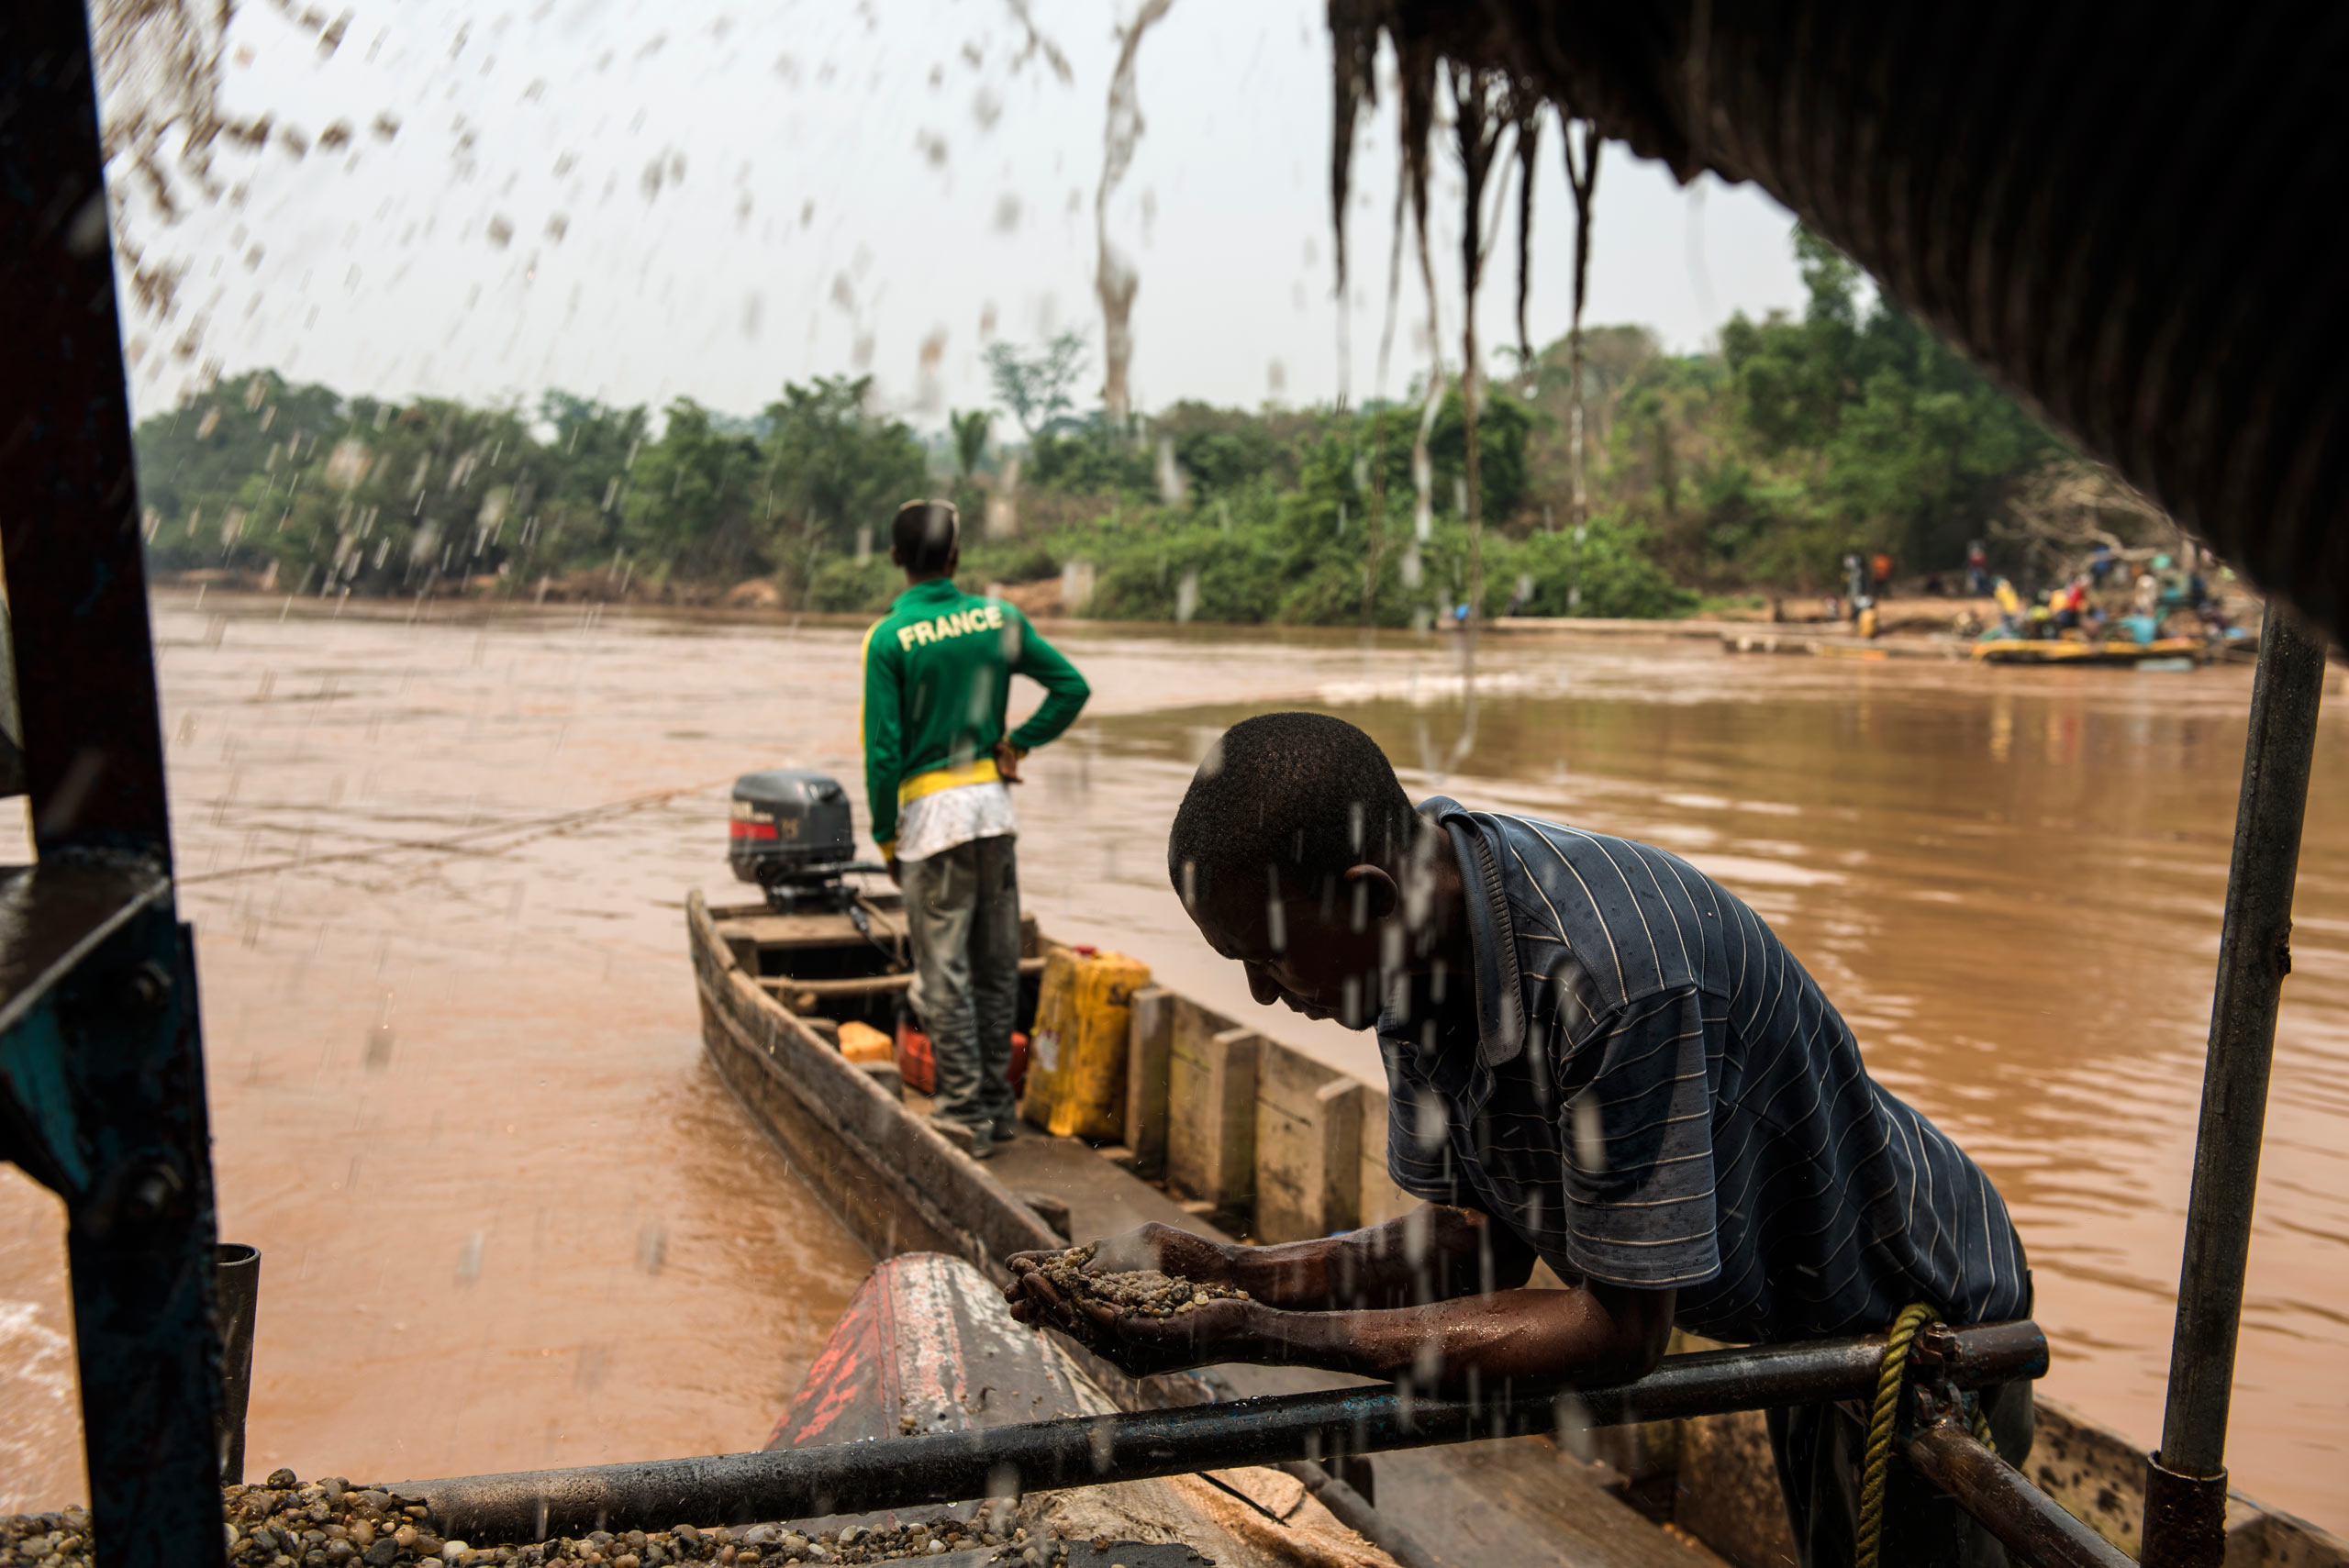 Congolese workers search for rough diamonds in a  semi-industrialised diamond digging site along a river in the Democratic Republic of Congo. Aug. 6, 2015.